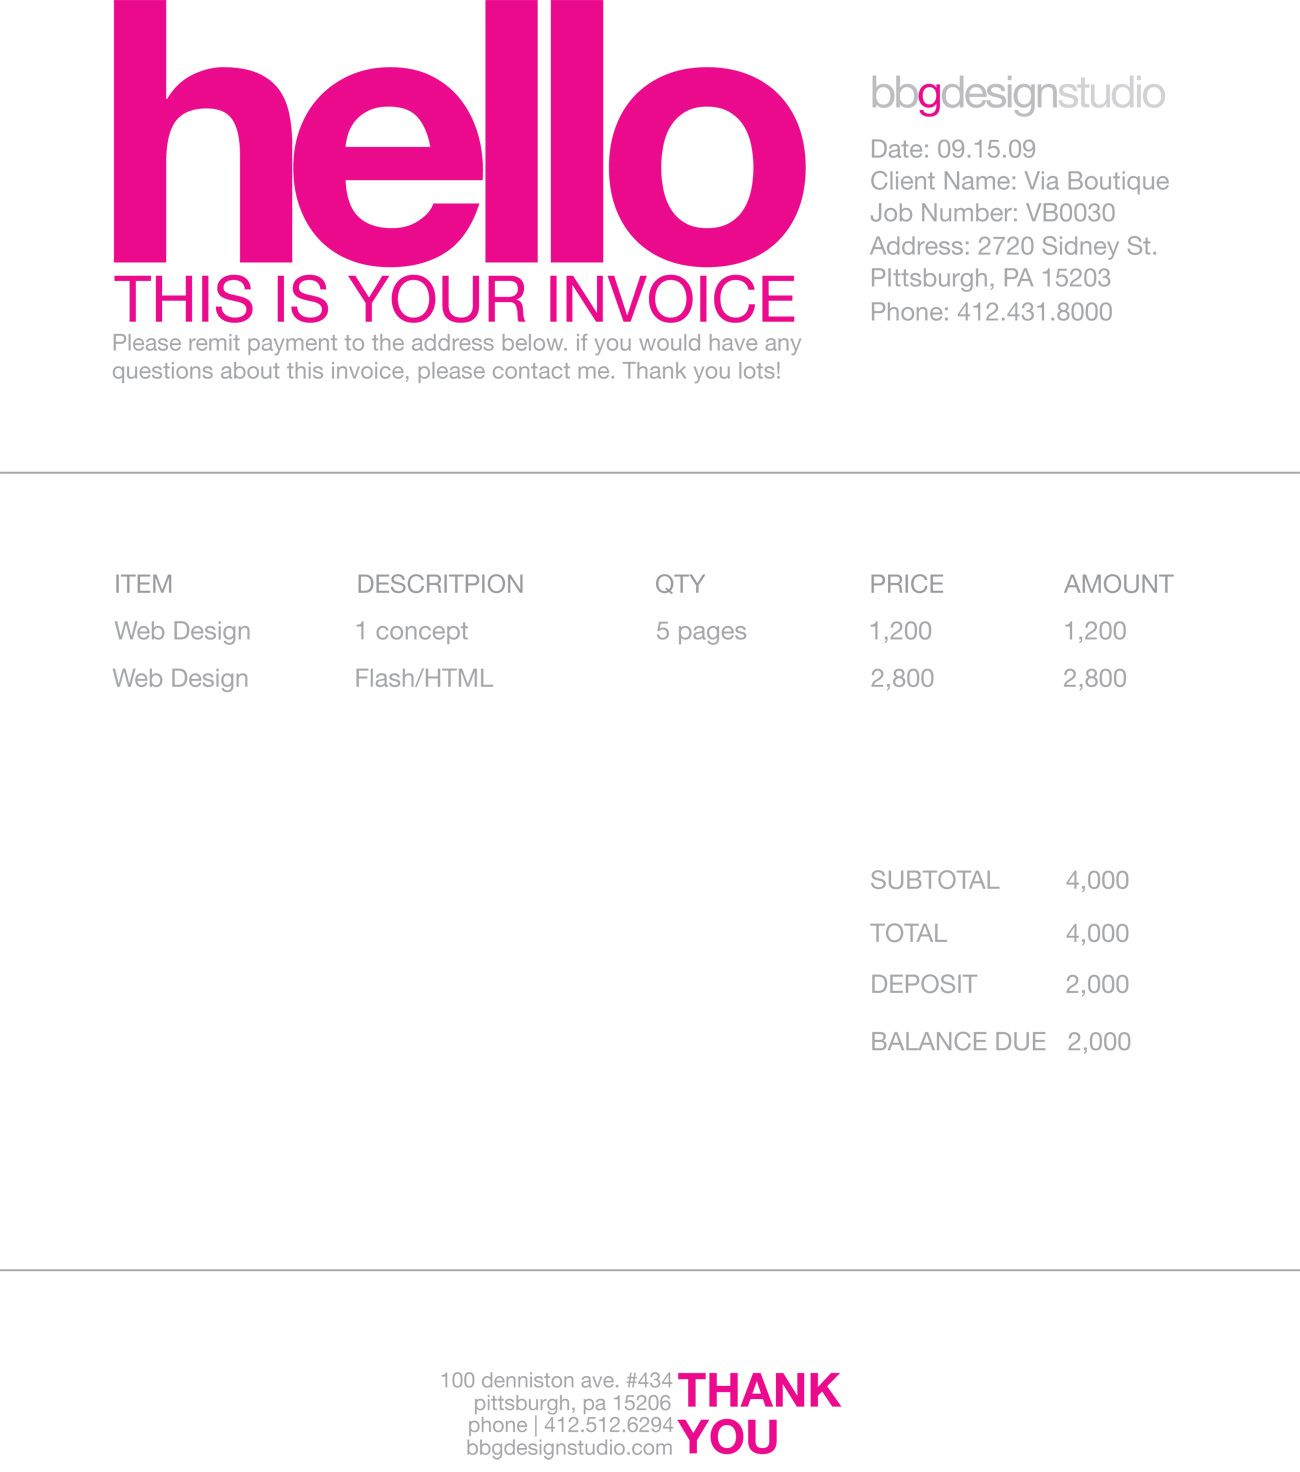 Totallocalus  Stunning  Images About Invoice Design On Pinterest With Luxury Credit Invoice Template Besides Sample Invoice In Word Format Furthermore Sage Invoice Paper With Beauteous Invoice Copy Sample Also Invoice Template Ato In Addition No Gst Invoice And Receipt Of The Invoice As Well As Hmrc Vat Invoices Additionally Free Invoice App For Ipad From Pinterestcom With Totallocalus  Luxury  Images About Invoice Design On Pinterest With Beauteous Credit Invoice Template Besides Sample Invoice In Word Format Furthermore Sage Invoice Paper And Stunning Invoice Copy Sample Also Invoice Template Ato In Addition No Gst Invoice From Pinterestcom